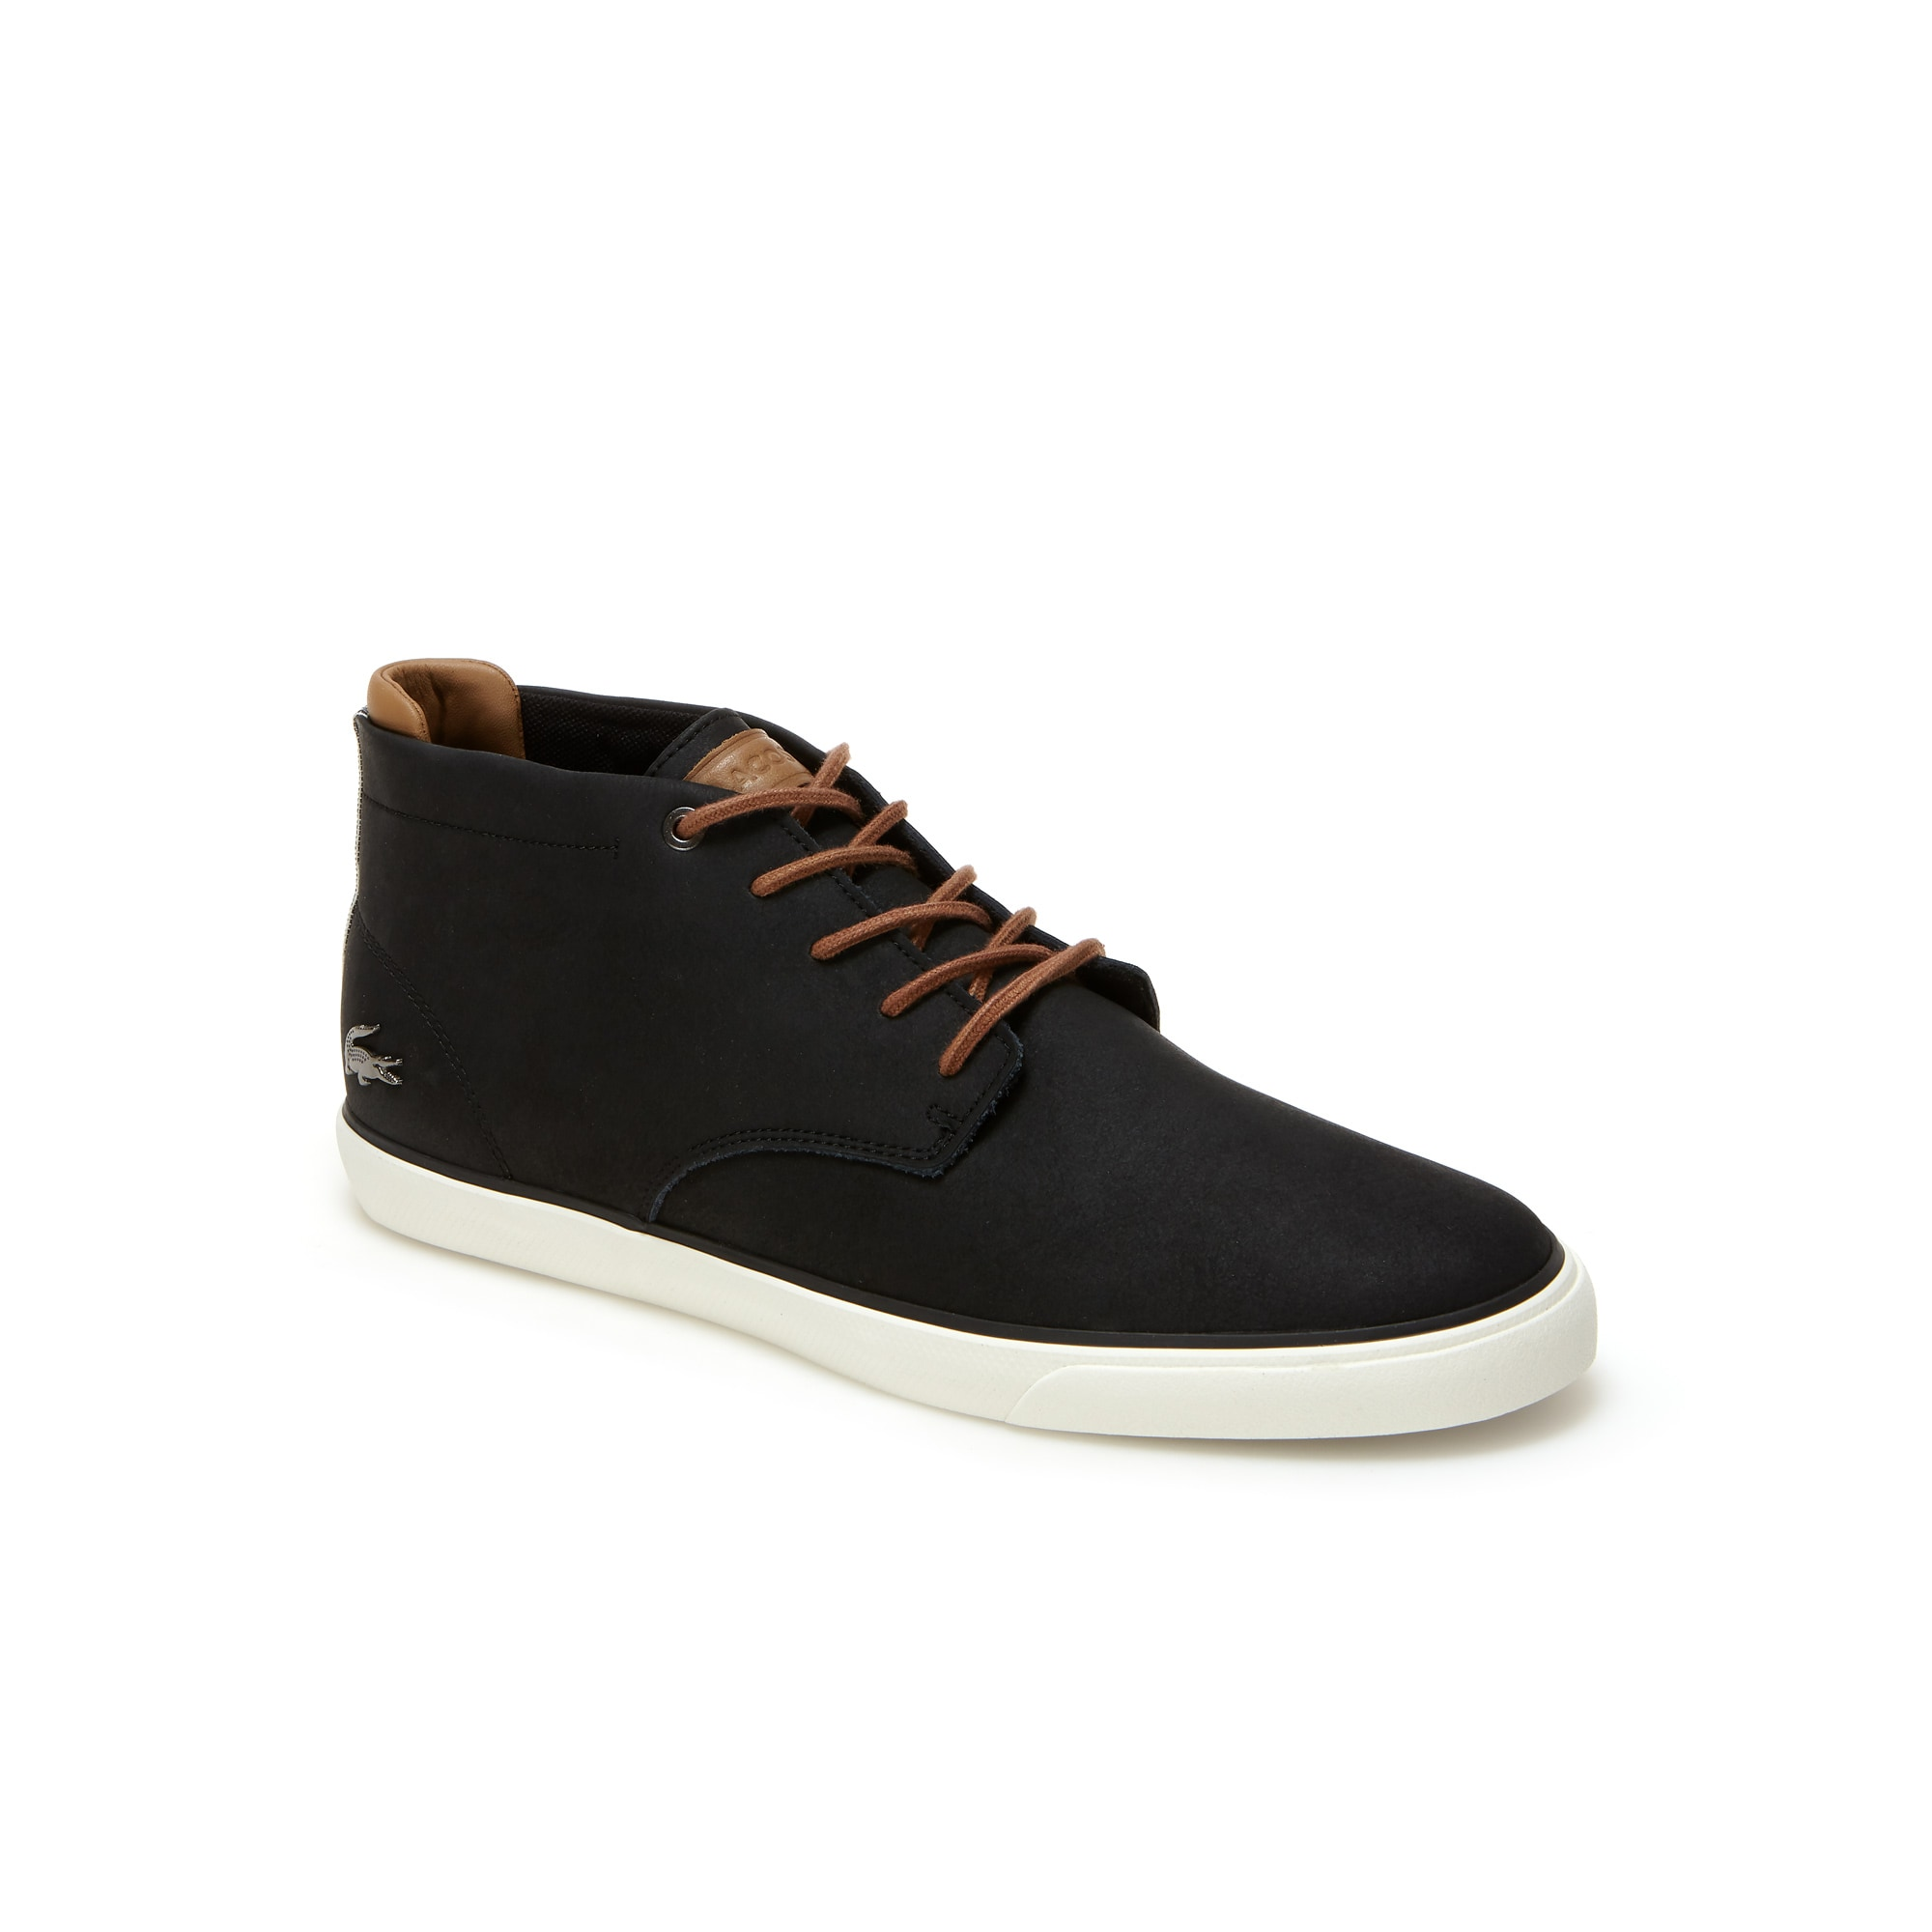 Men's Esparre Chukka Leather Trainers